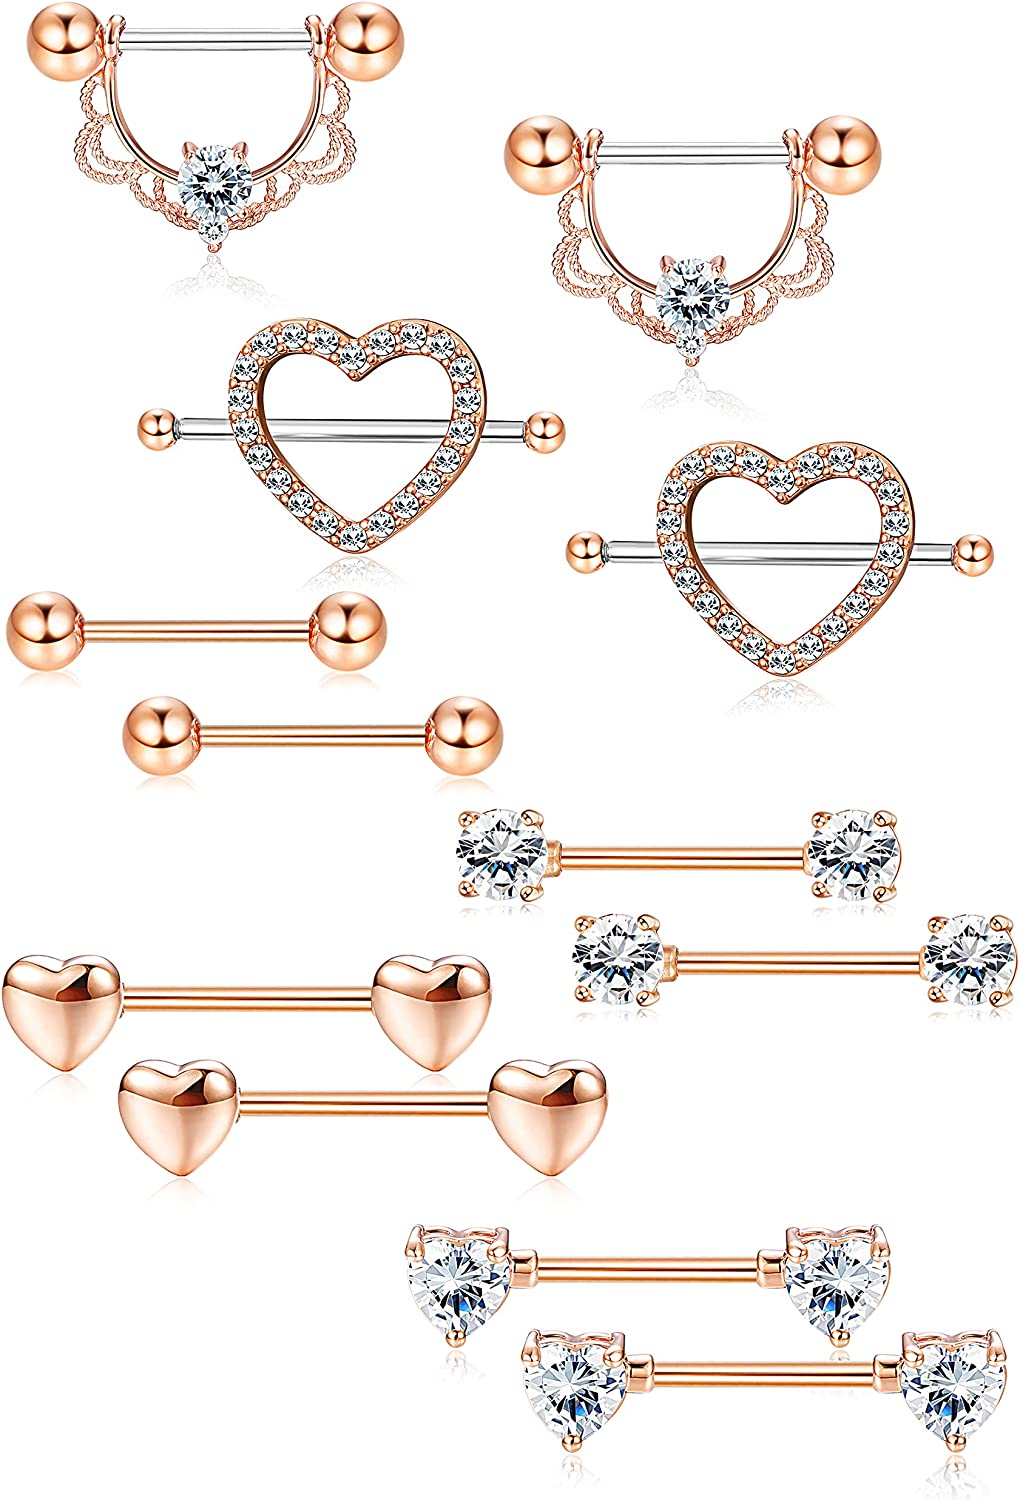 LOLIAS 6Pairs Stainless Steel Nipple Ring Piercing for Women Girls Nipple Studs Nipple Tougue Ring Piercing Barbell Barbell CZ Heart Shape Rings Body Piercing Jewelry,Rose Gold